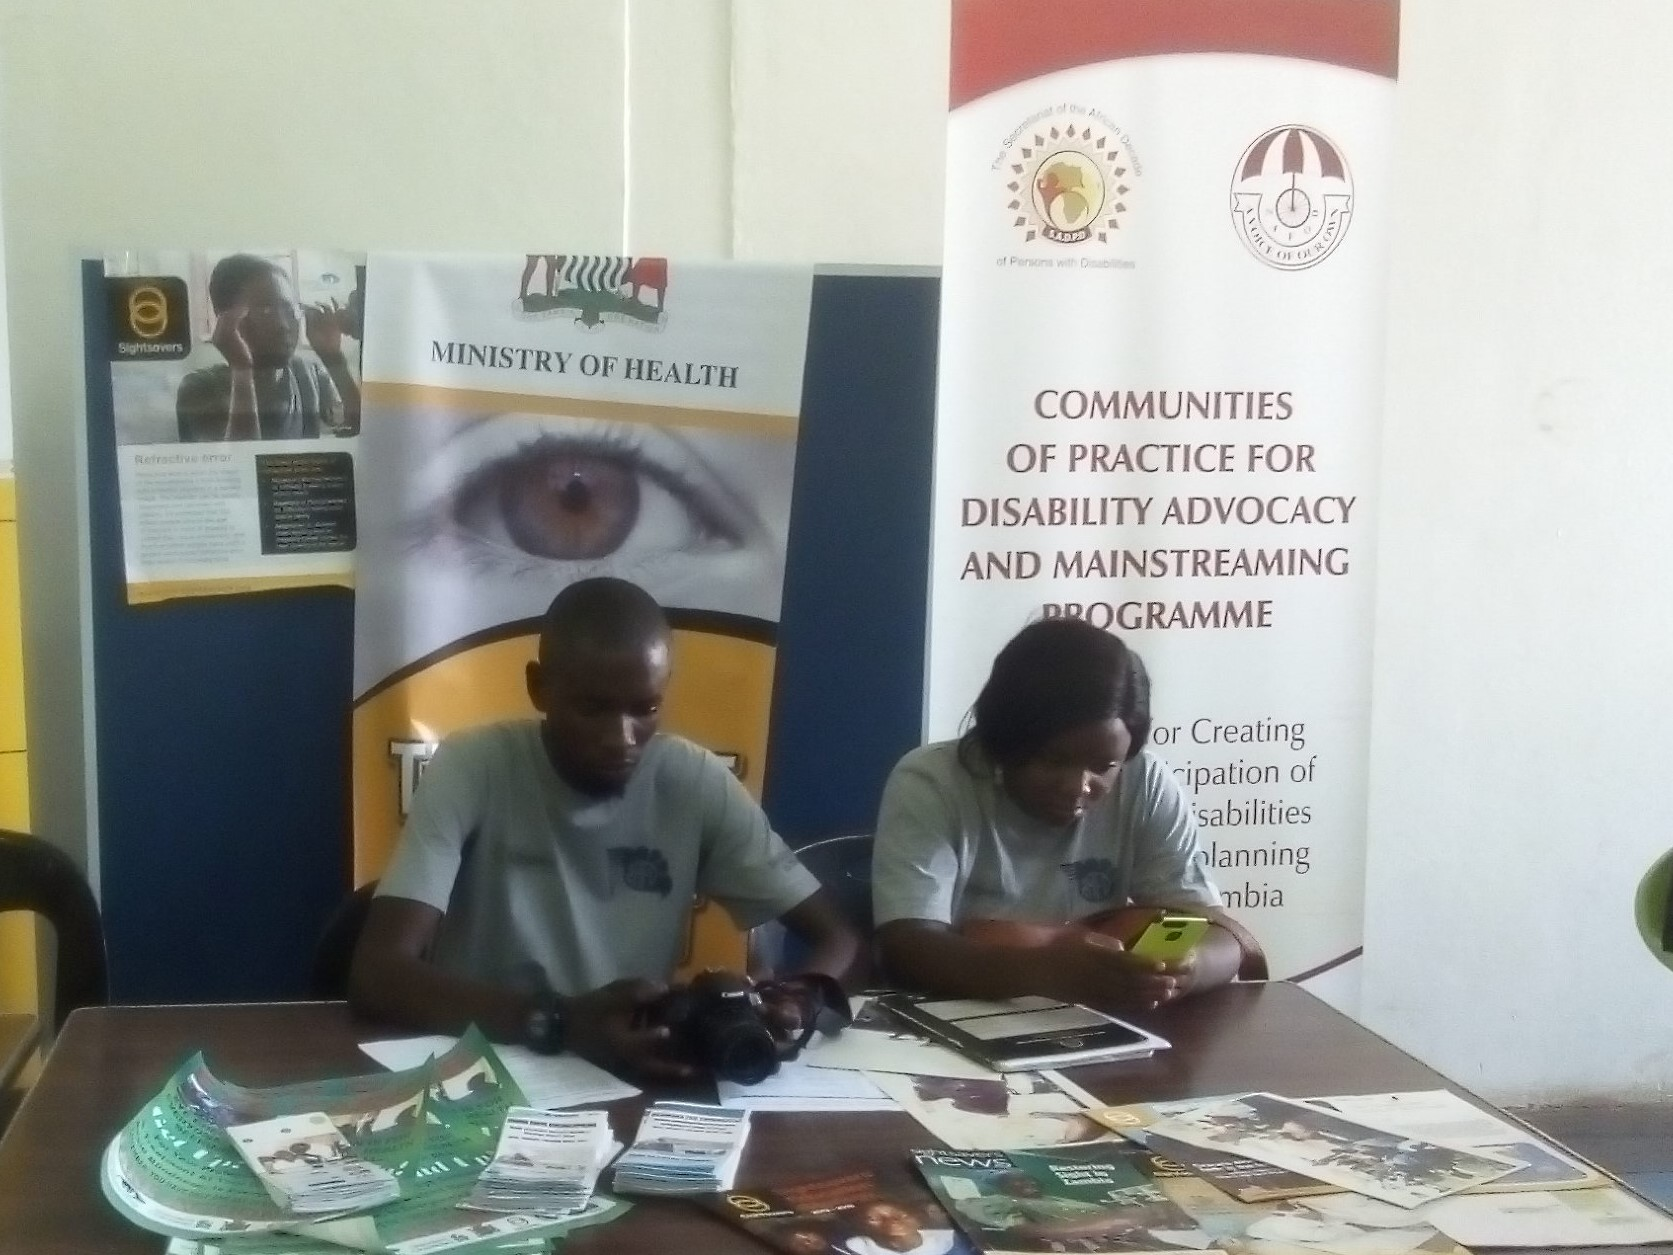 Exhibitors Stand -Ministry of Health and Communities of Practice for Disability Advocacy and Mainstreaming Programme